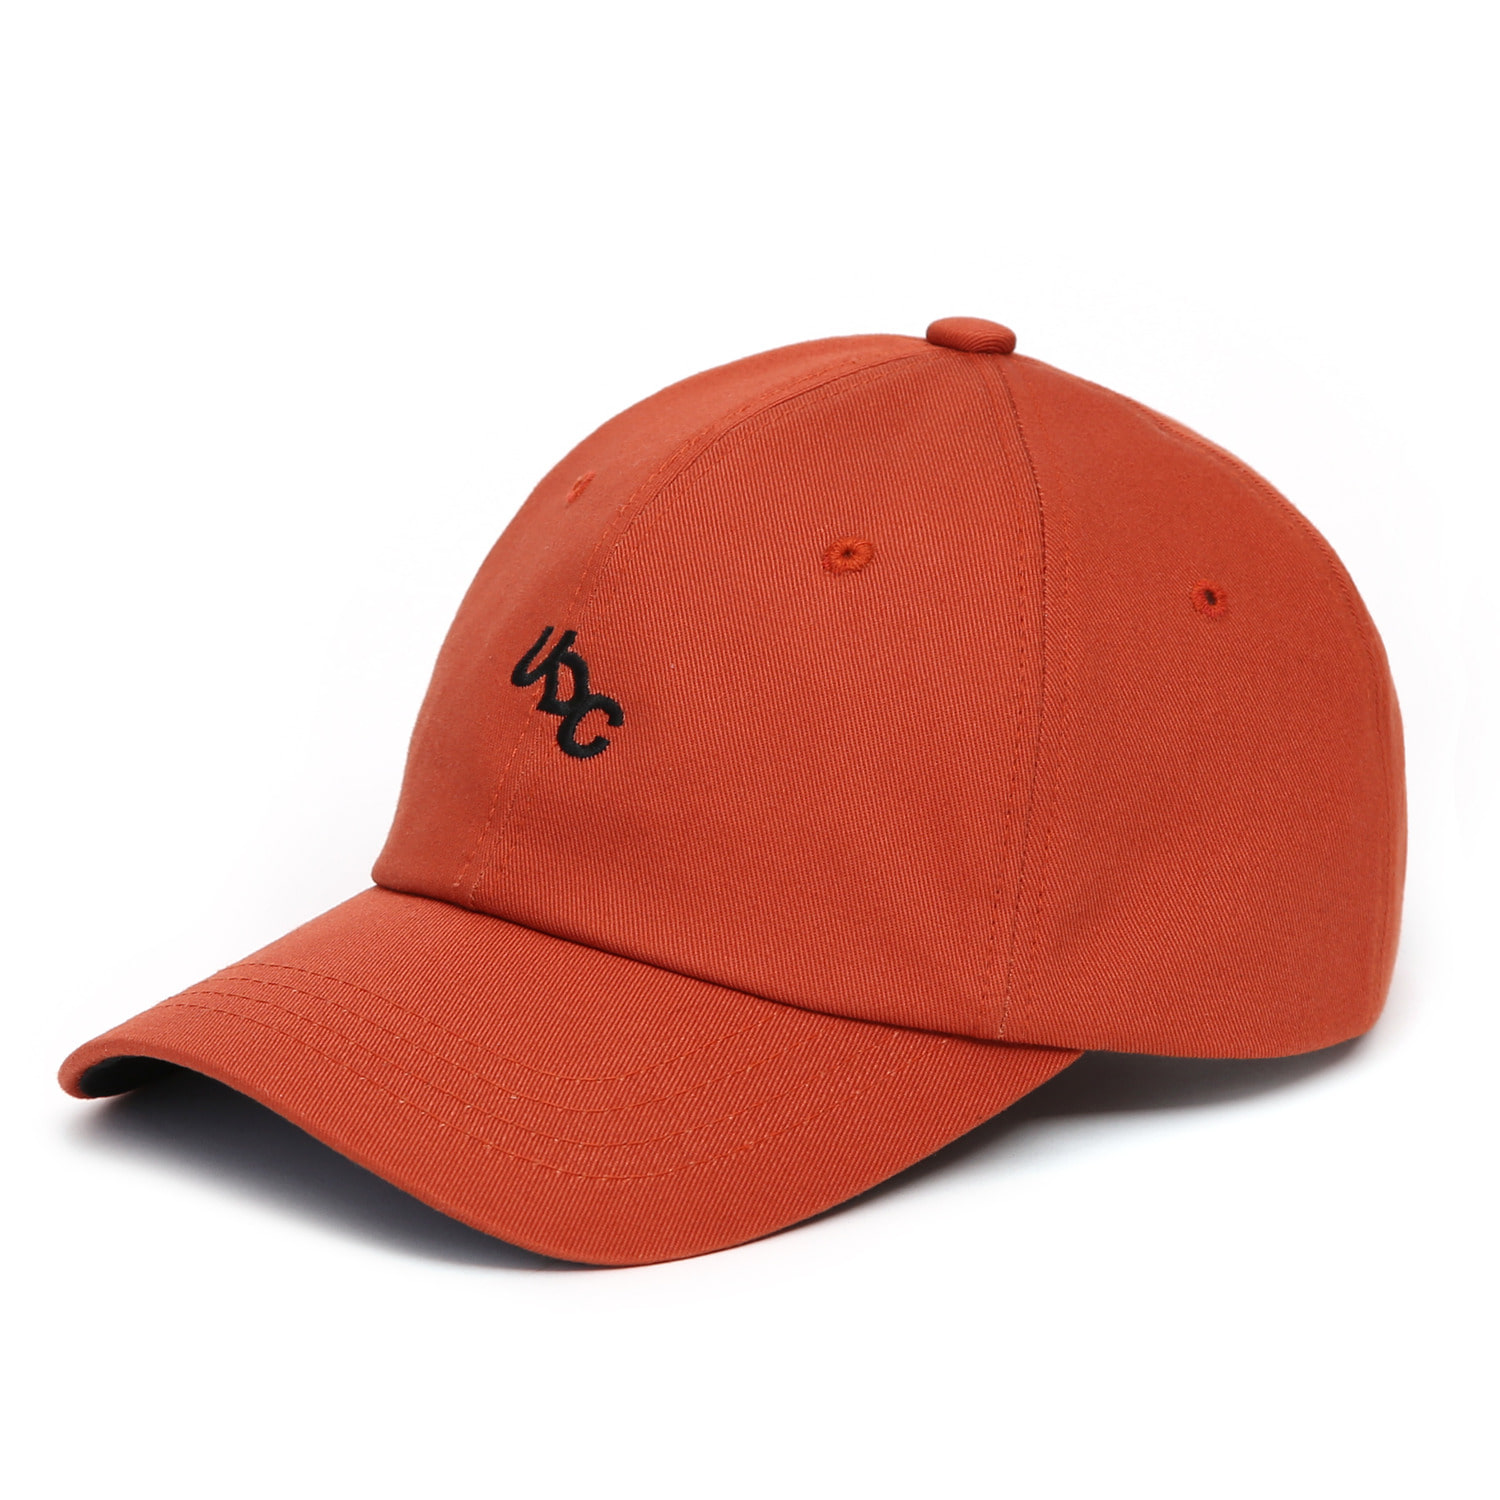 WAVE LOGO / AUTHENTIC B B / ORANGE